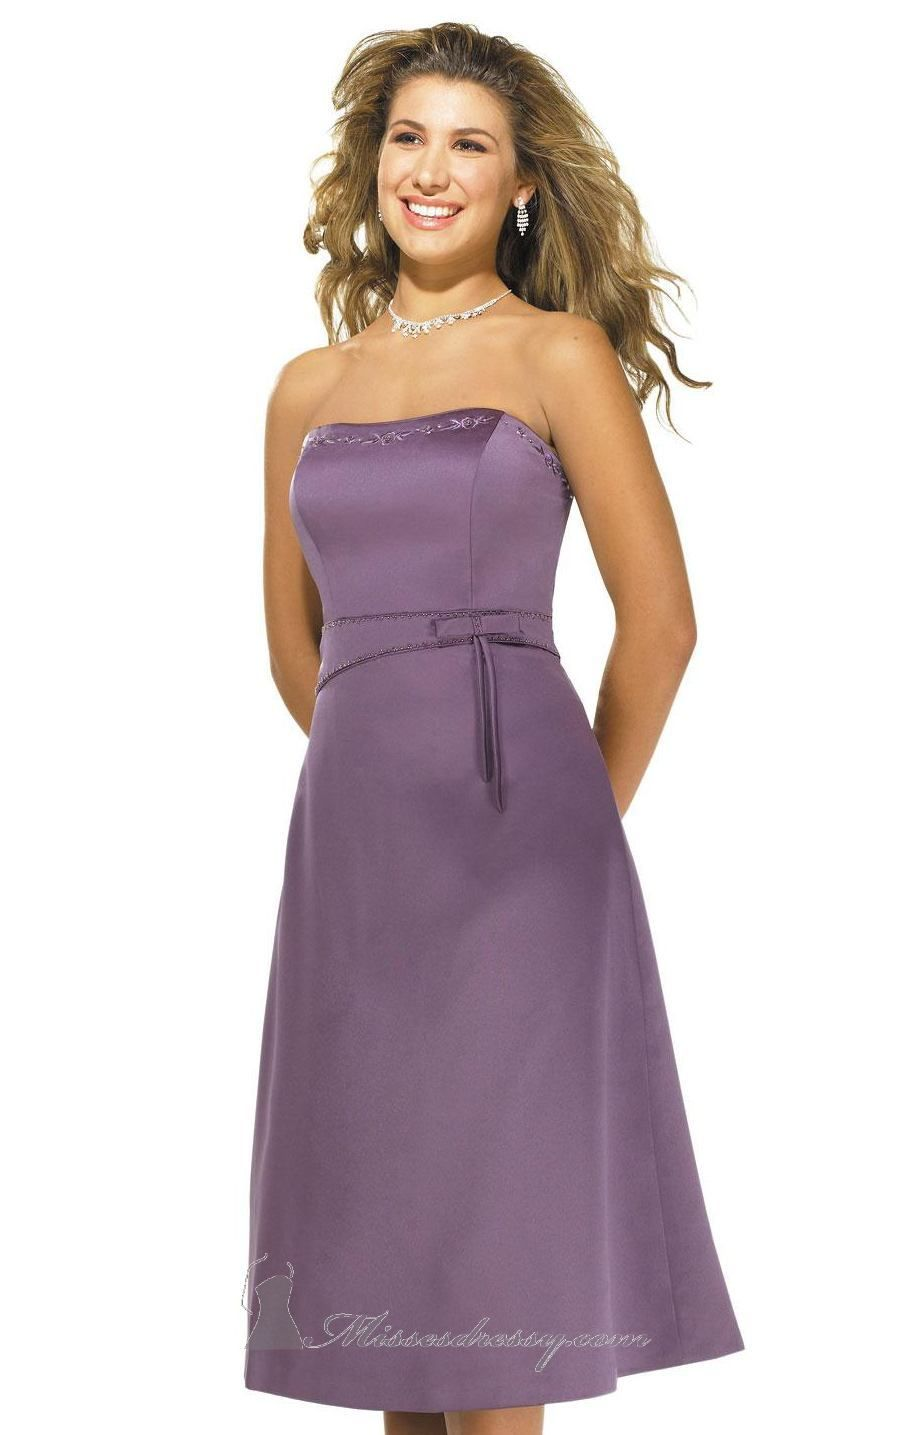 http://newradioguests.com/alexia-2502-dress-p-50.html | brand things ...